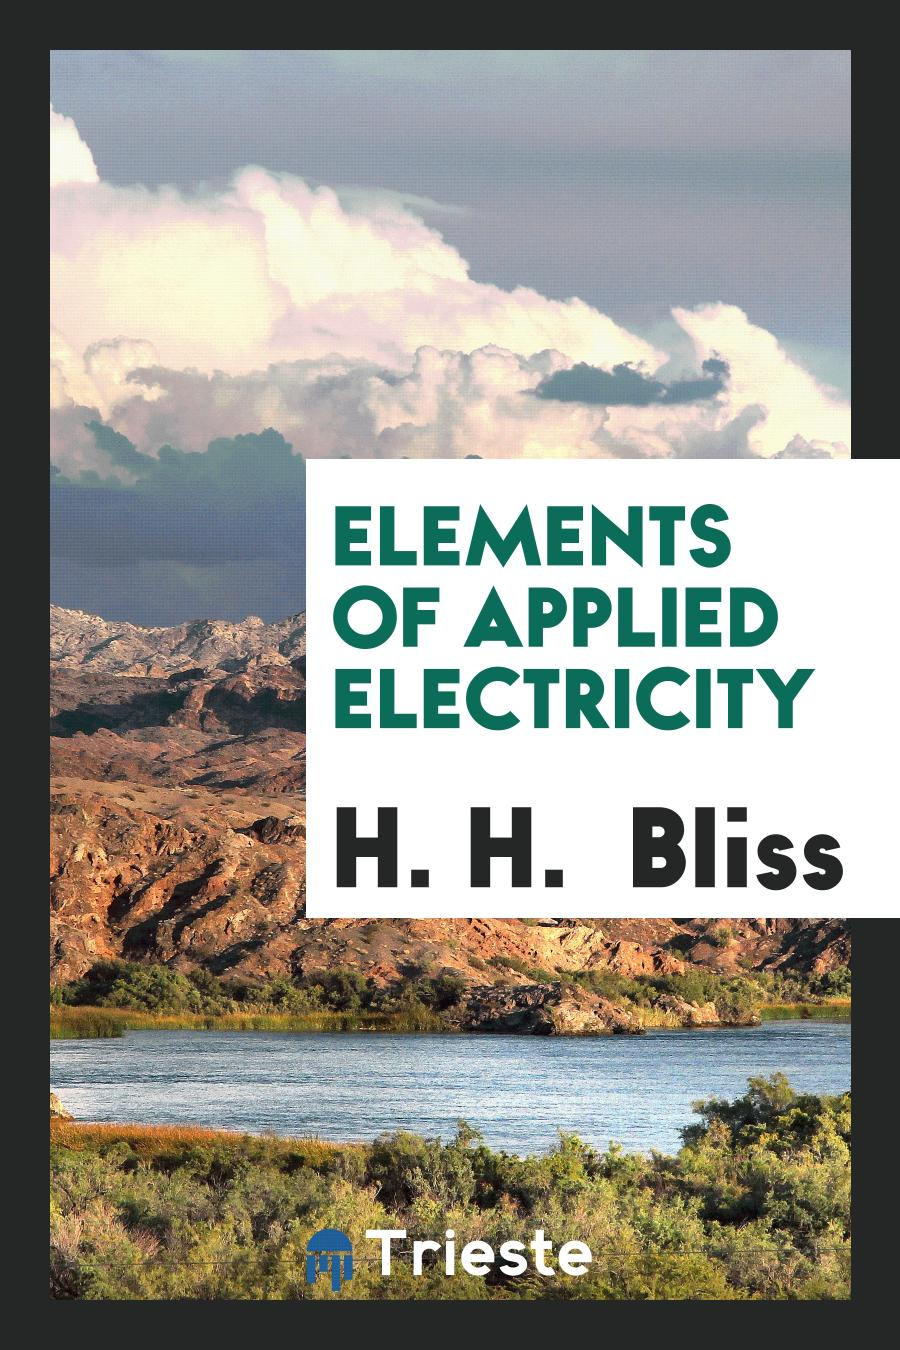 Elements of Applied Electricity